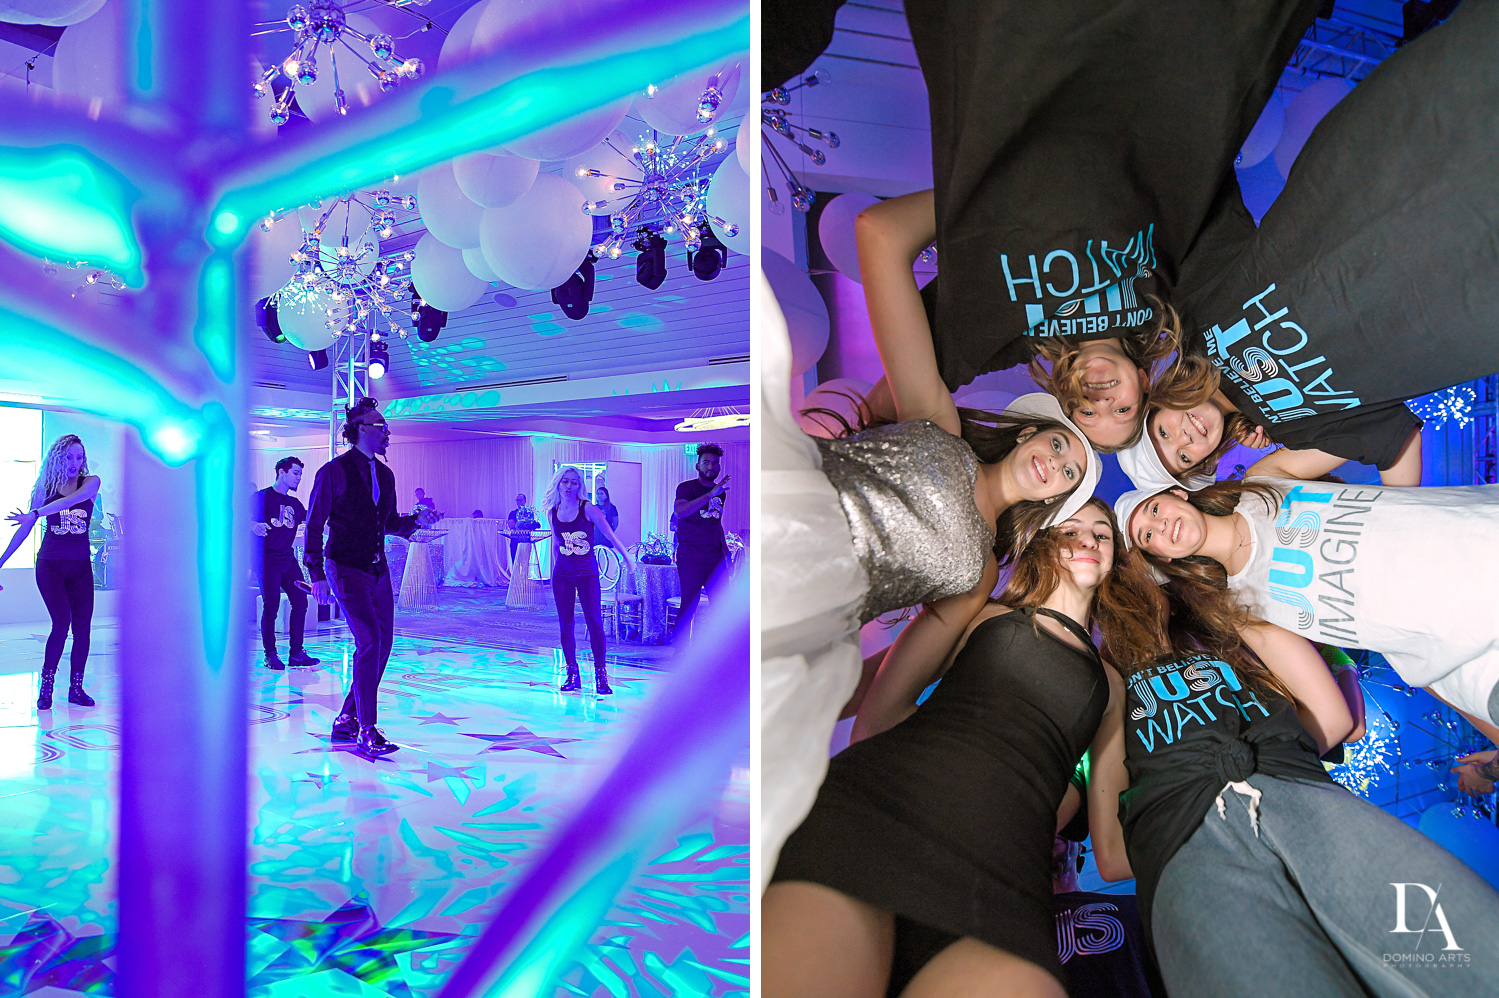 Trendy Decor Bat Mitzvah at St Andrews Country Club by Domino Arts Photography